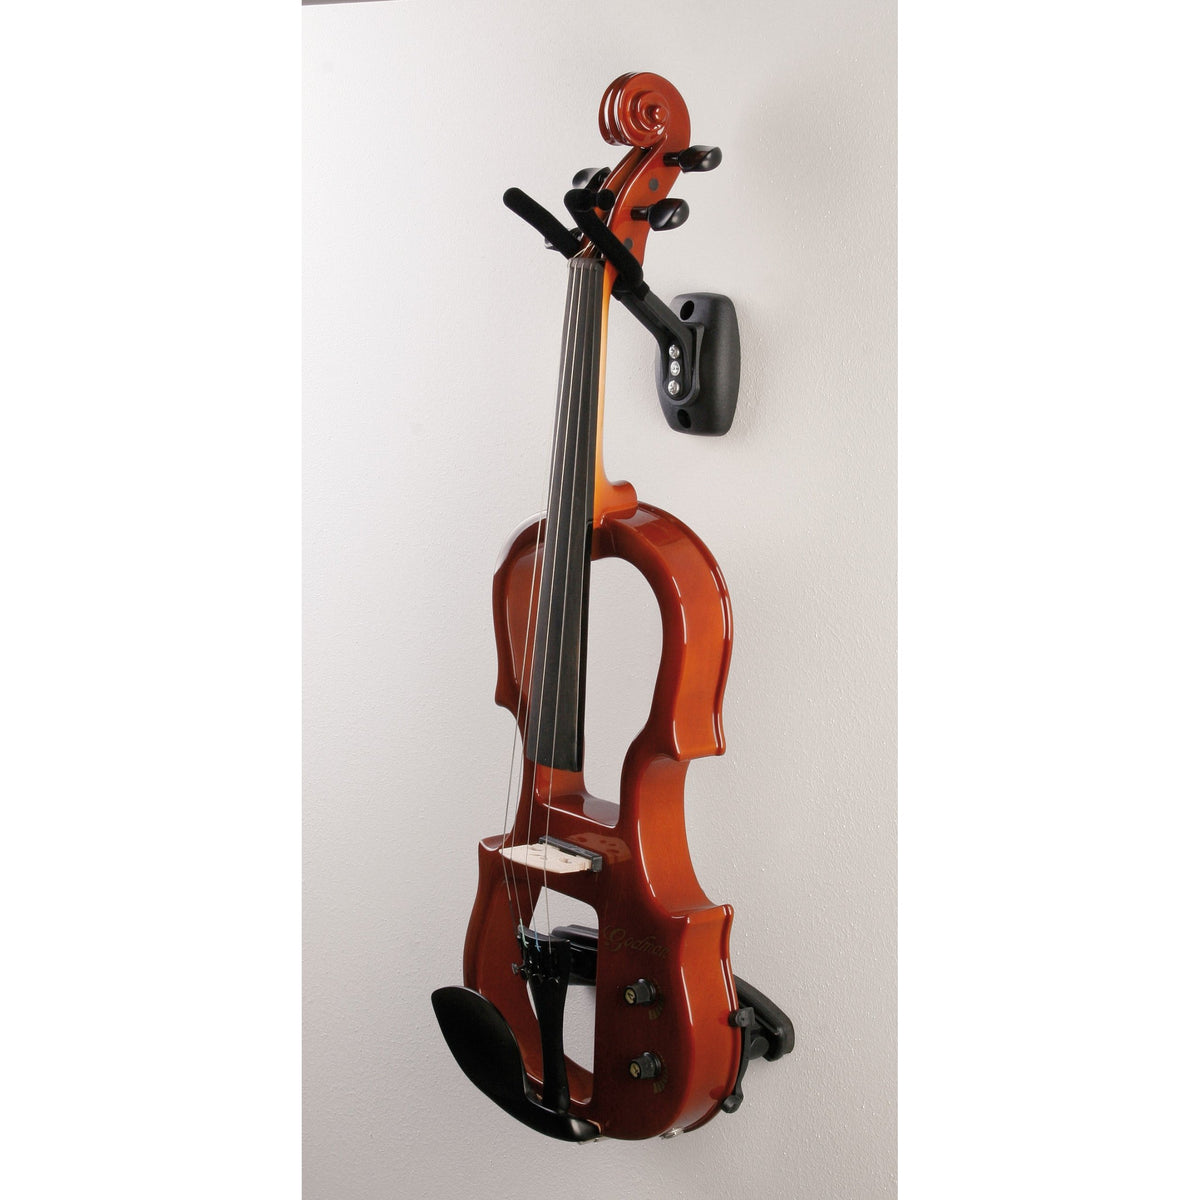 König & Meyer - 16580 Violin Wall Holder-Instrument Stand-König & Meyer-Music Elements